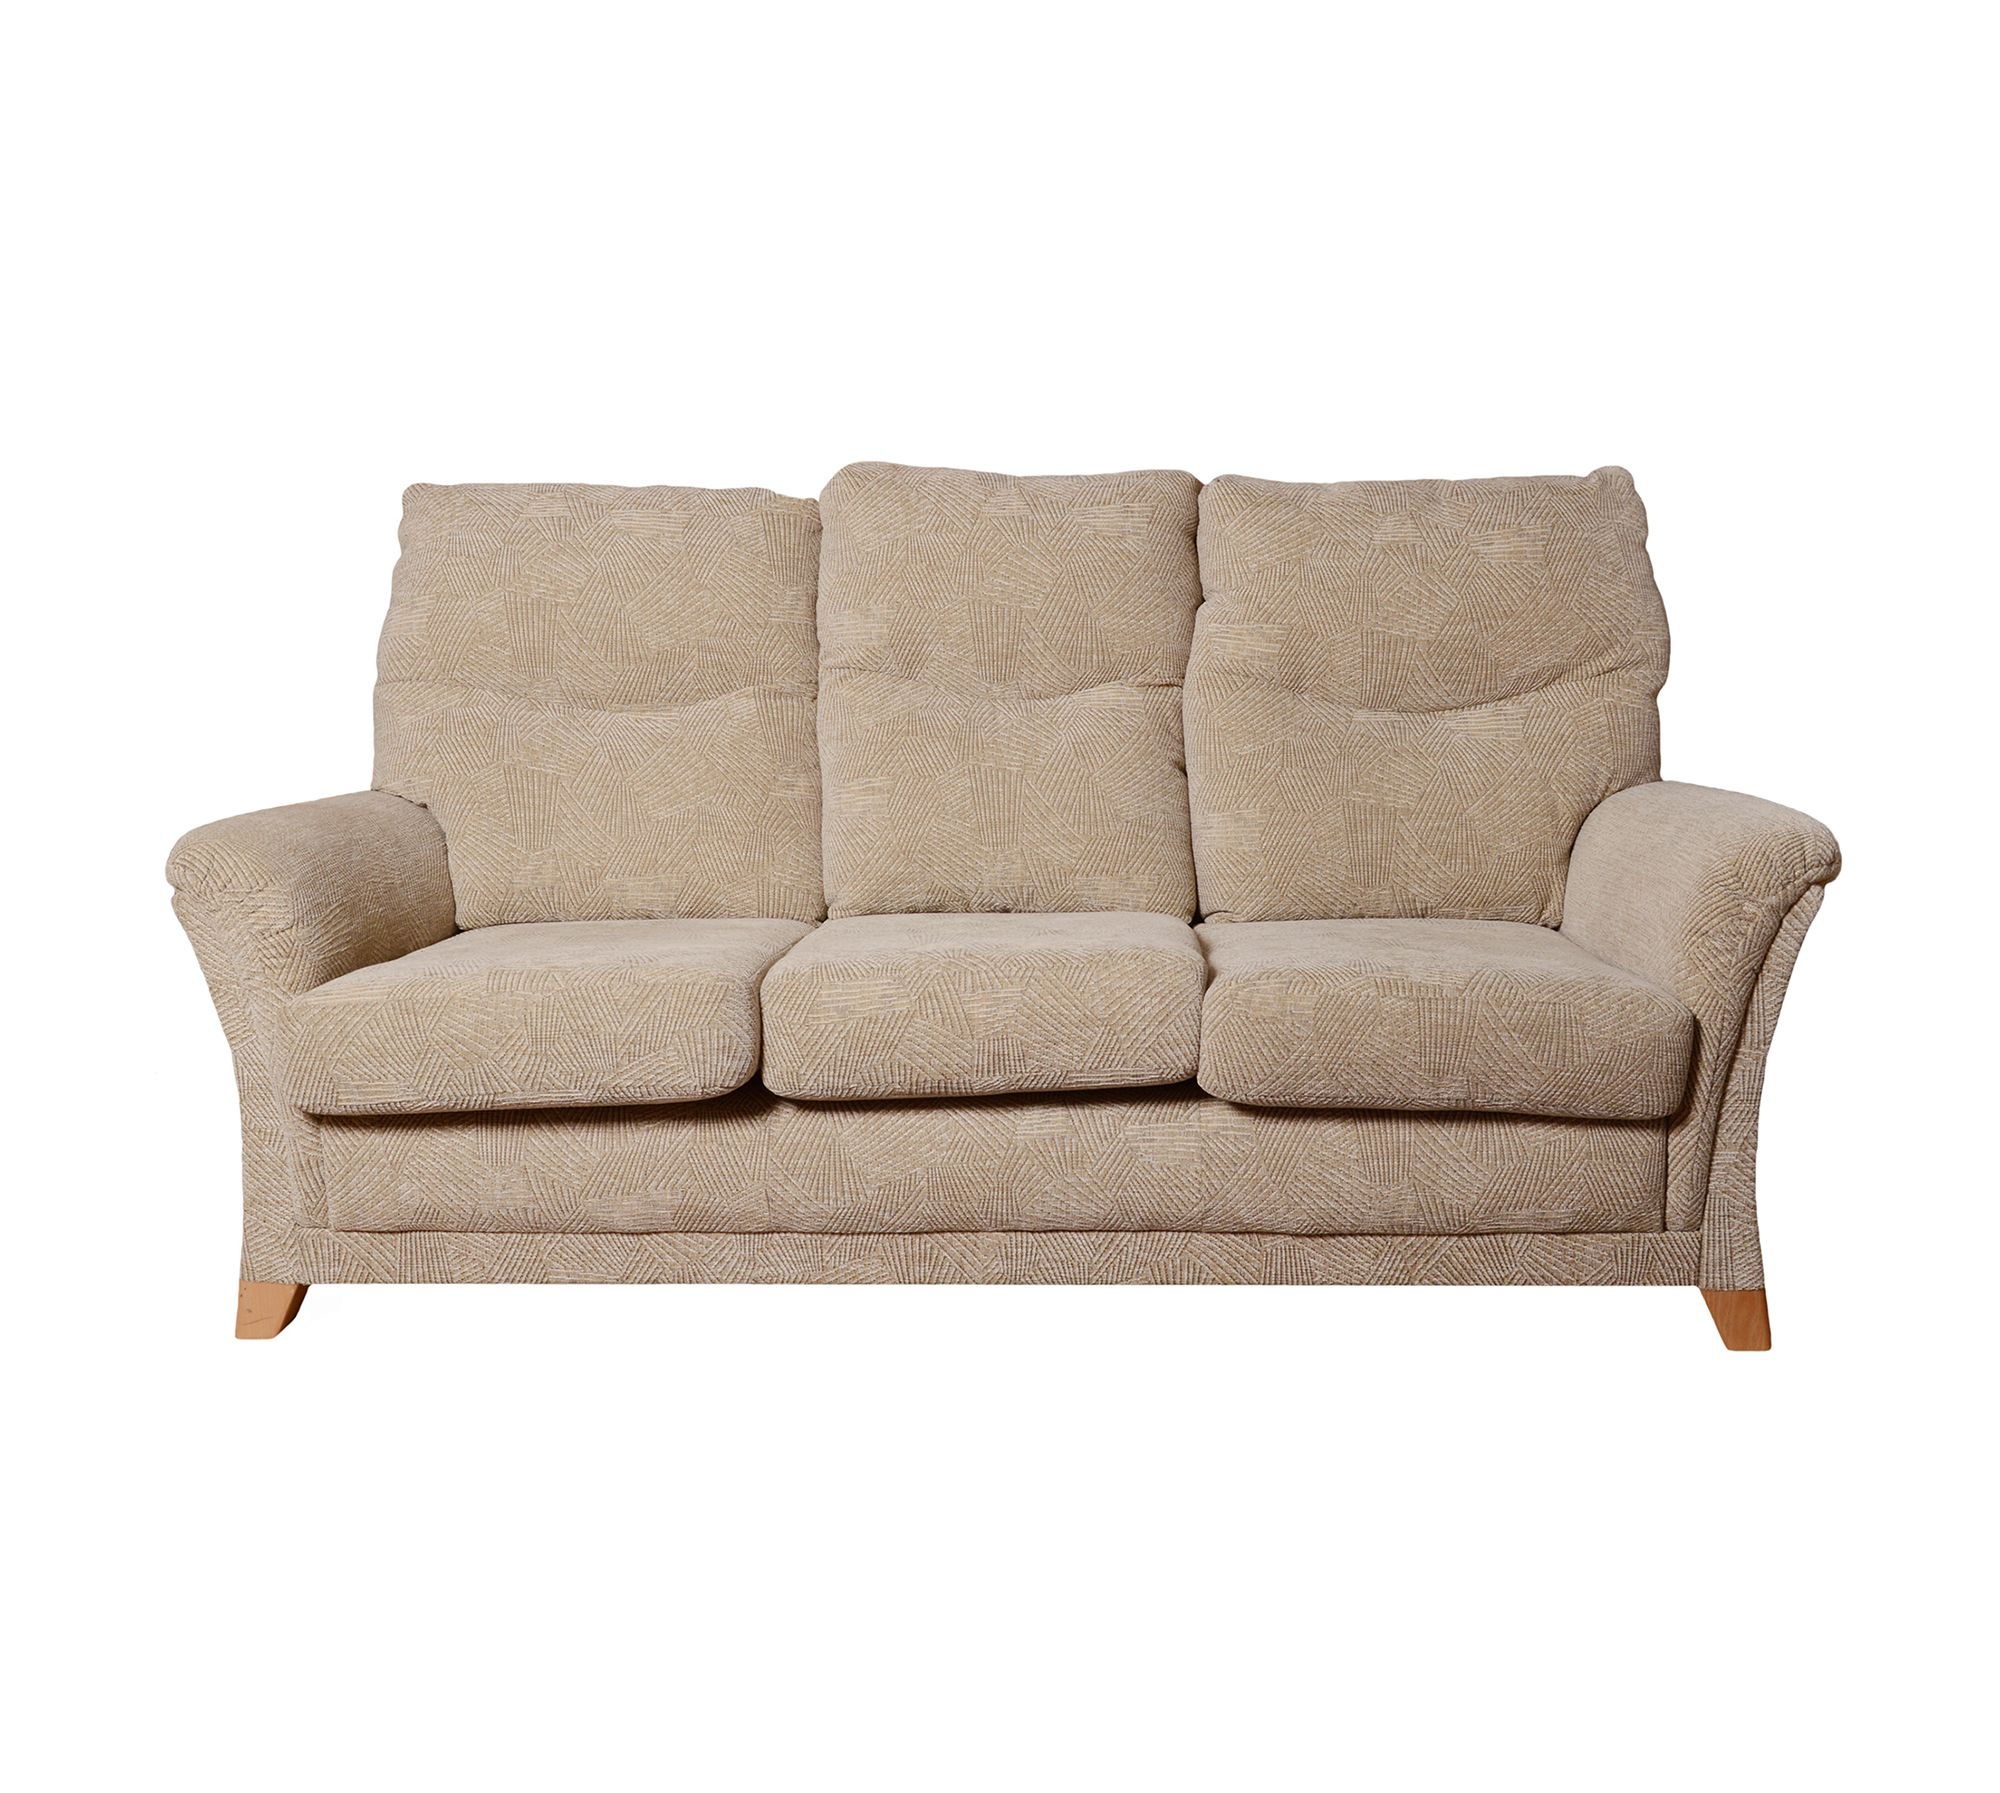 meabh 3 seater sofa all fabrics all sofa collections meubles. Black Bedroom Furniture Sets. Home Design Ideas